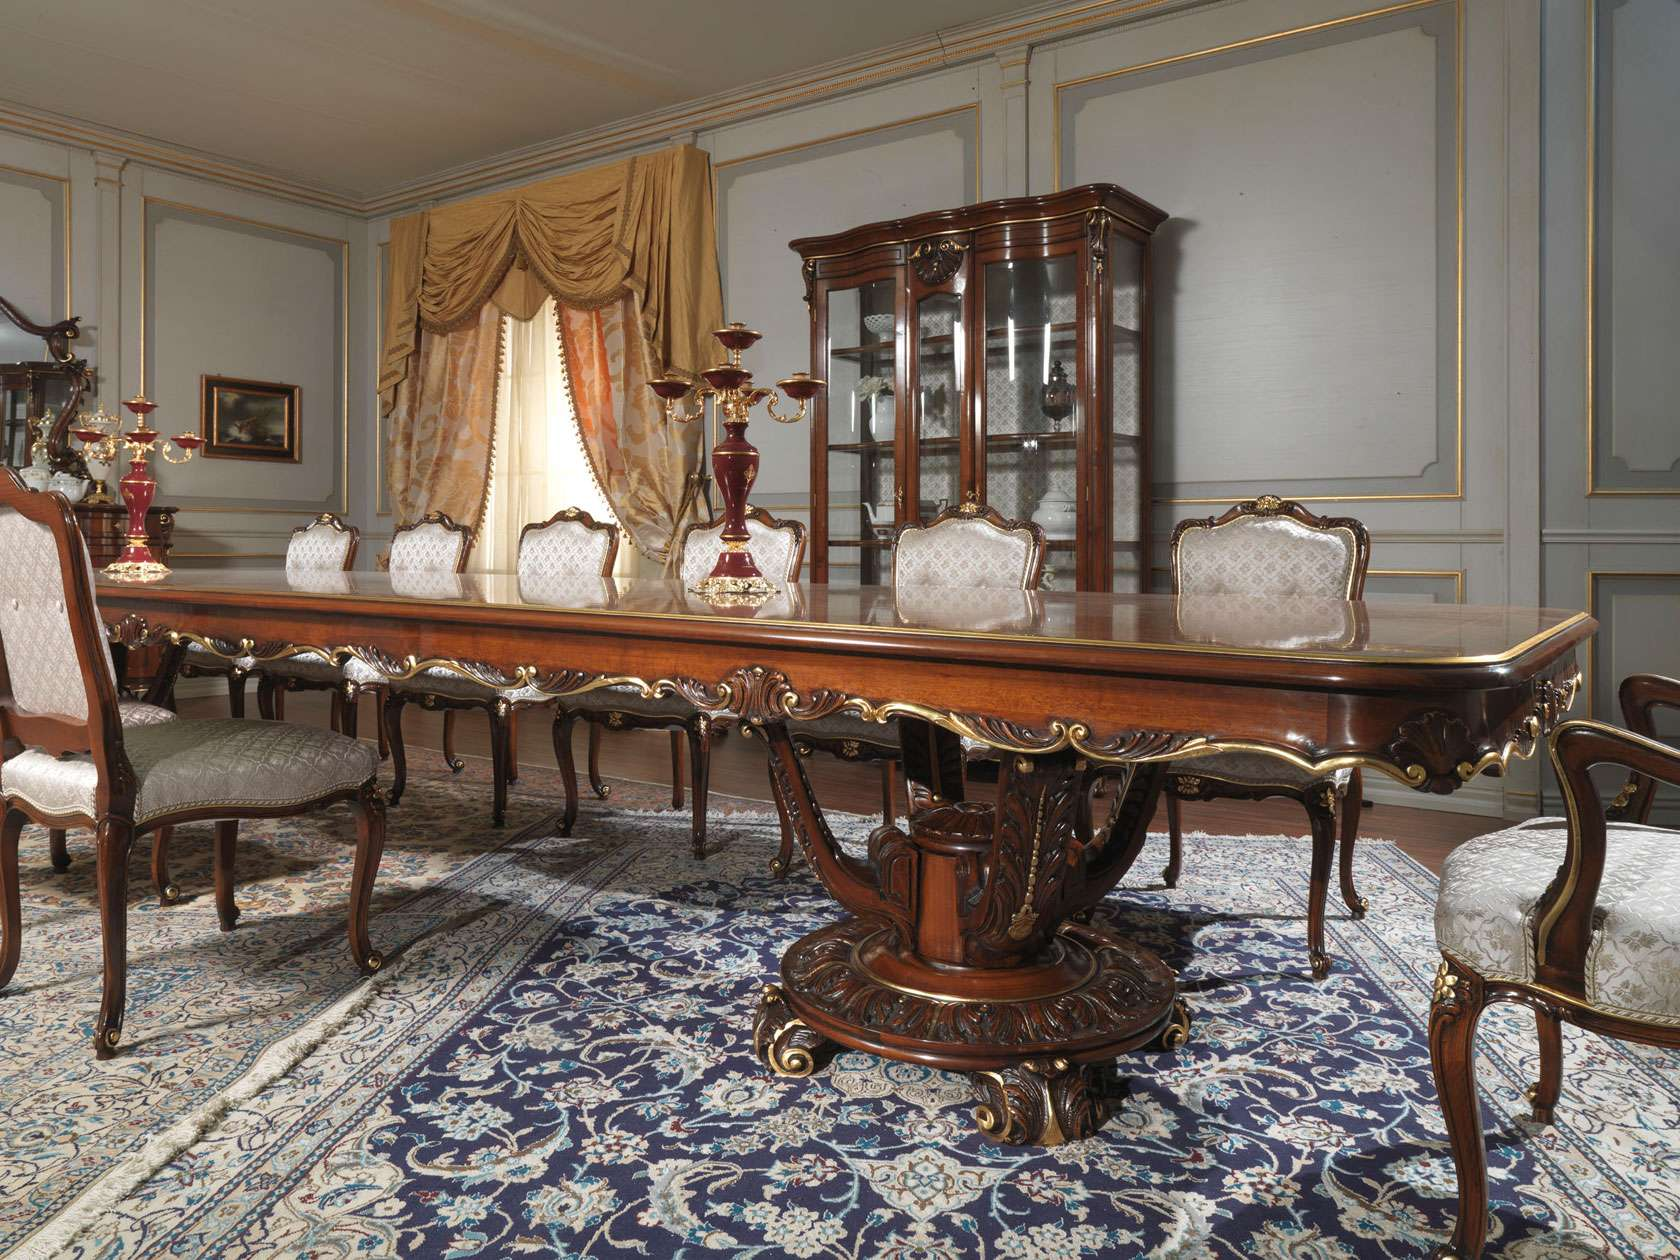 Carved table and glass showcase in louis xv style - Comedores clasicos ...